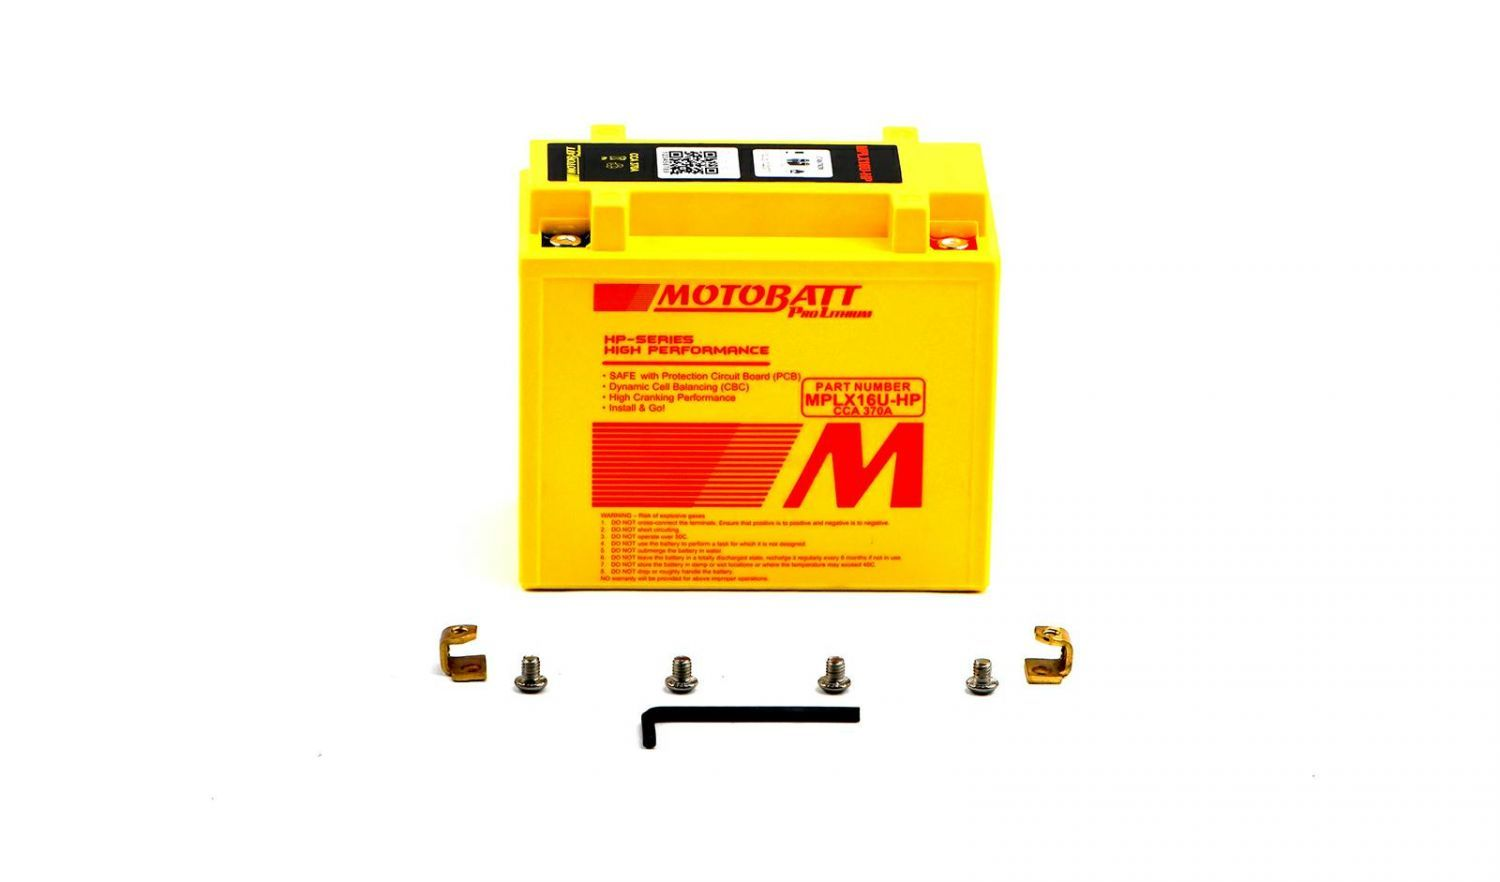 Motobatt Lithium Batteries - 501165MR image